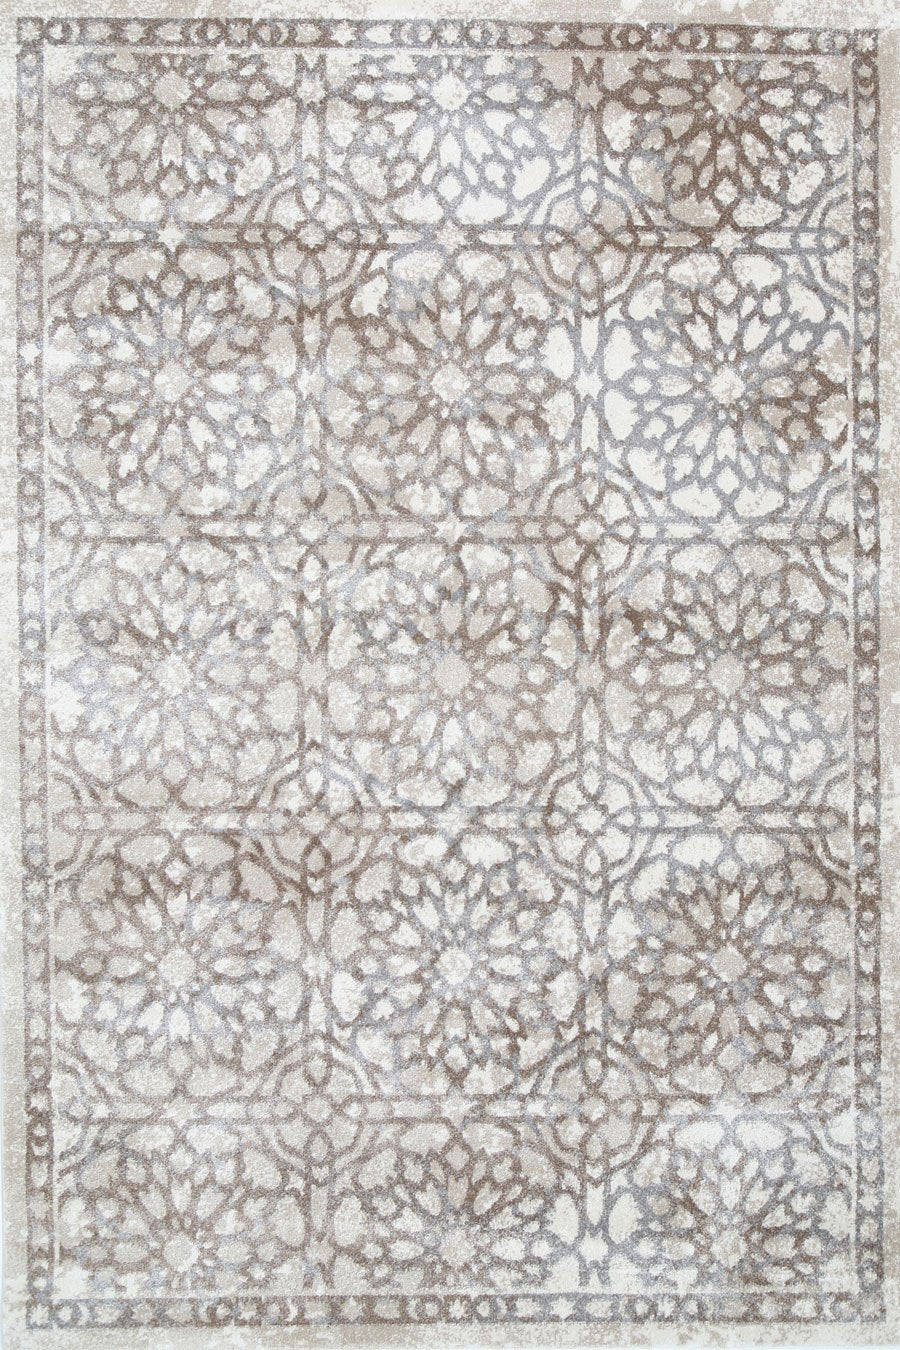 Morisot Grey and Beige Demask Rug